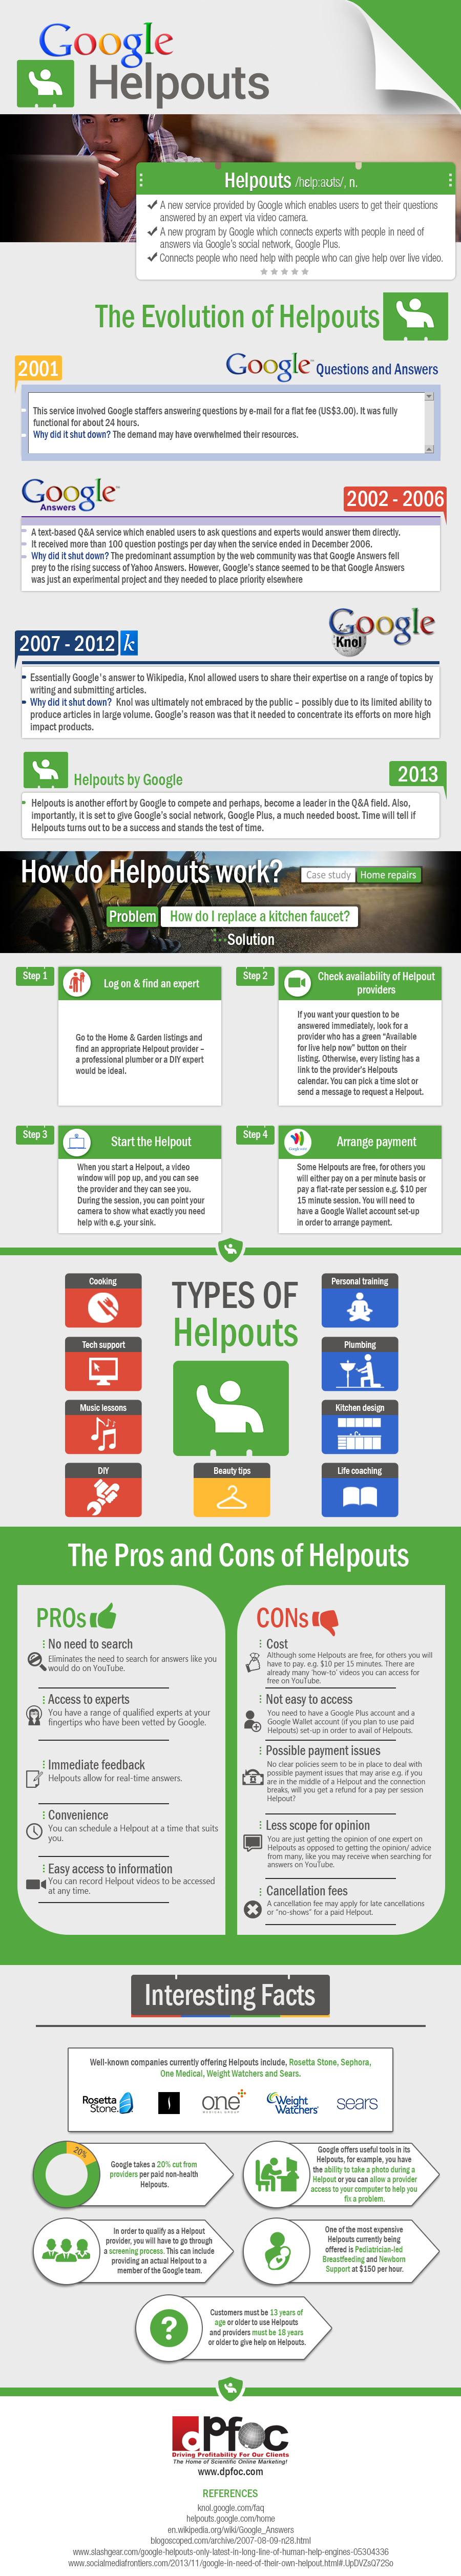 guide Google Helpouts